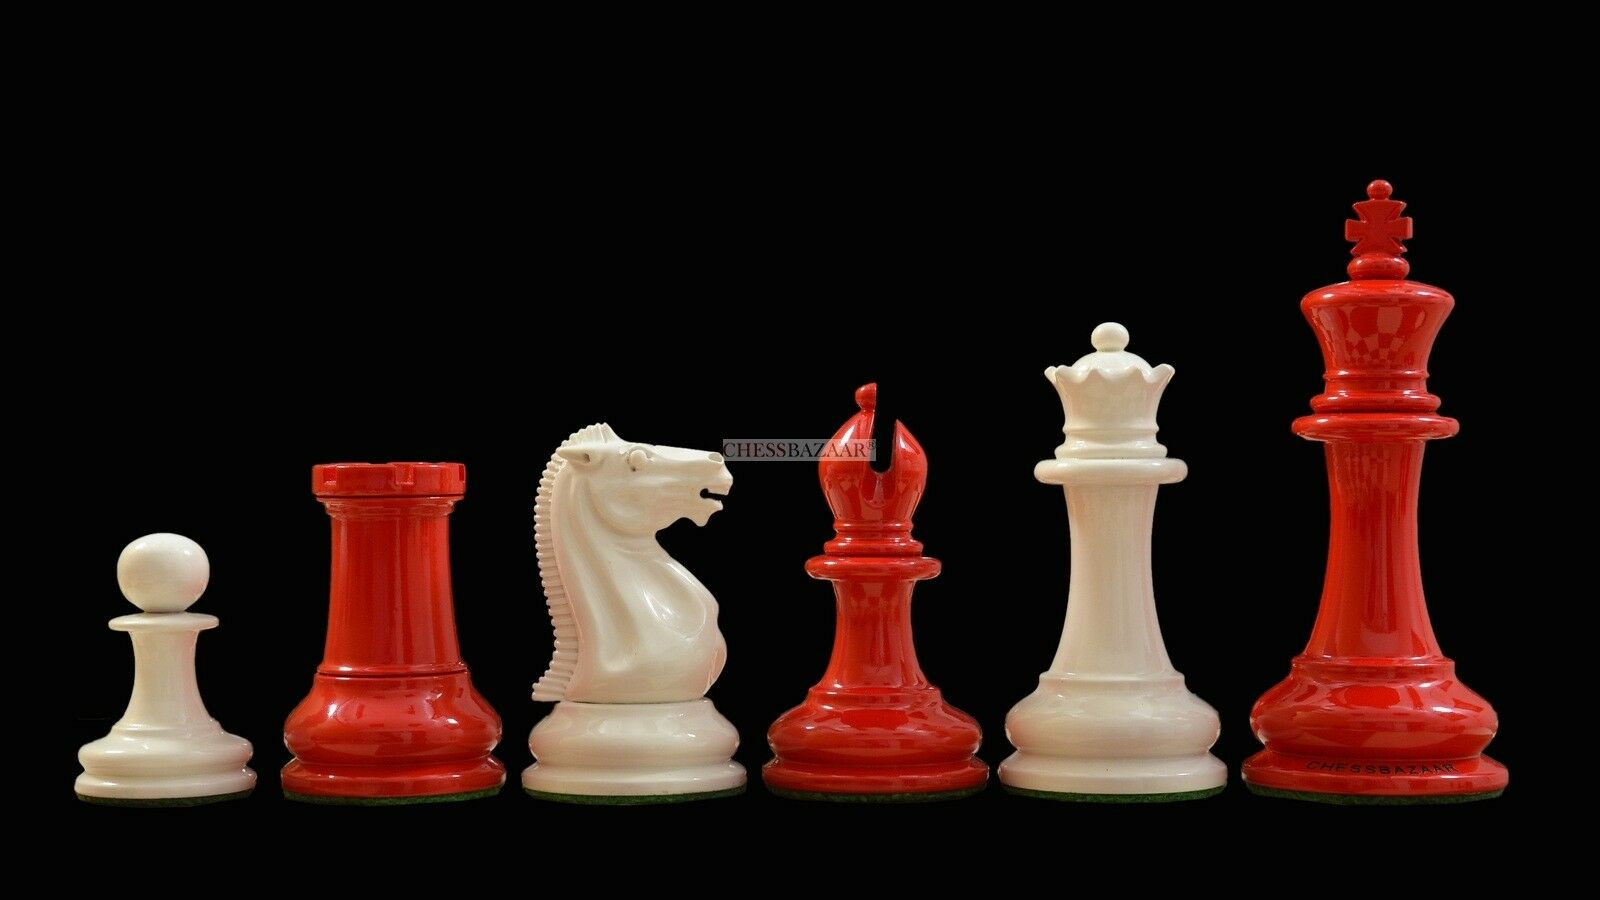 Reproduced Reproduced Reproduced 1849 Staunton Pattern Chess Set in Lacquer Crimson&Ivory White - 4.5  15f6b3